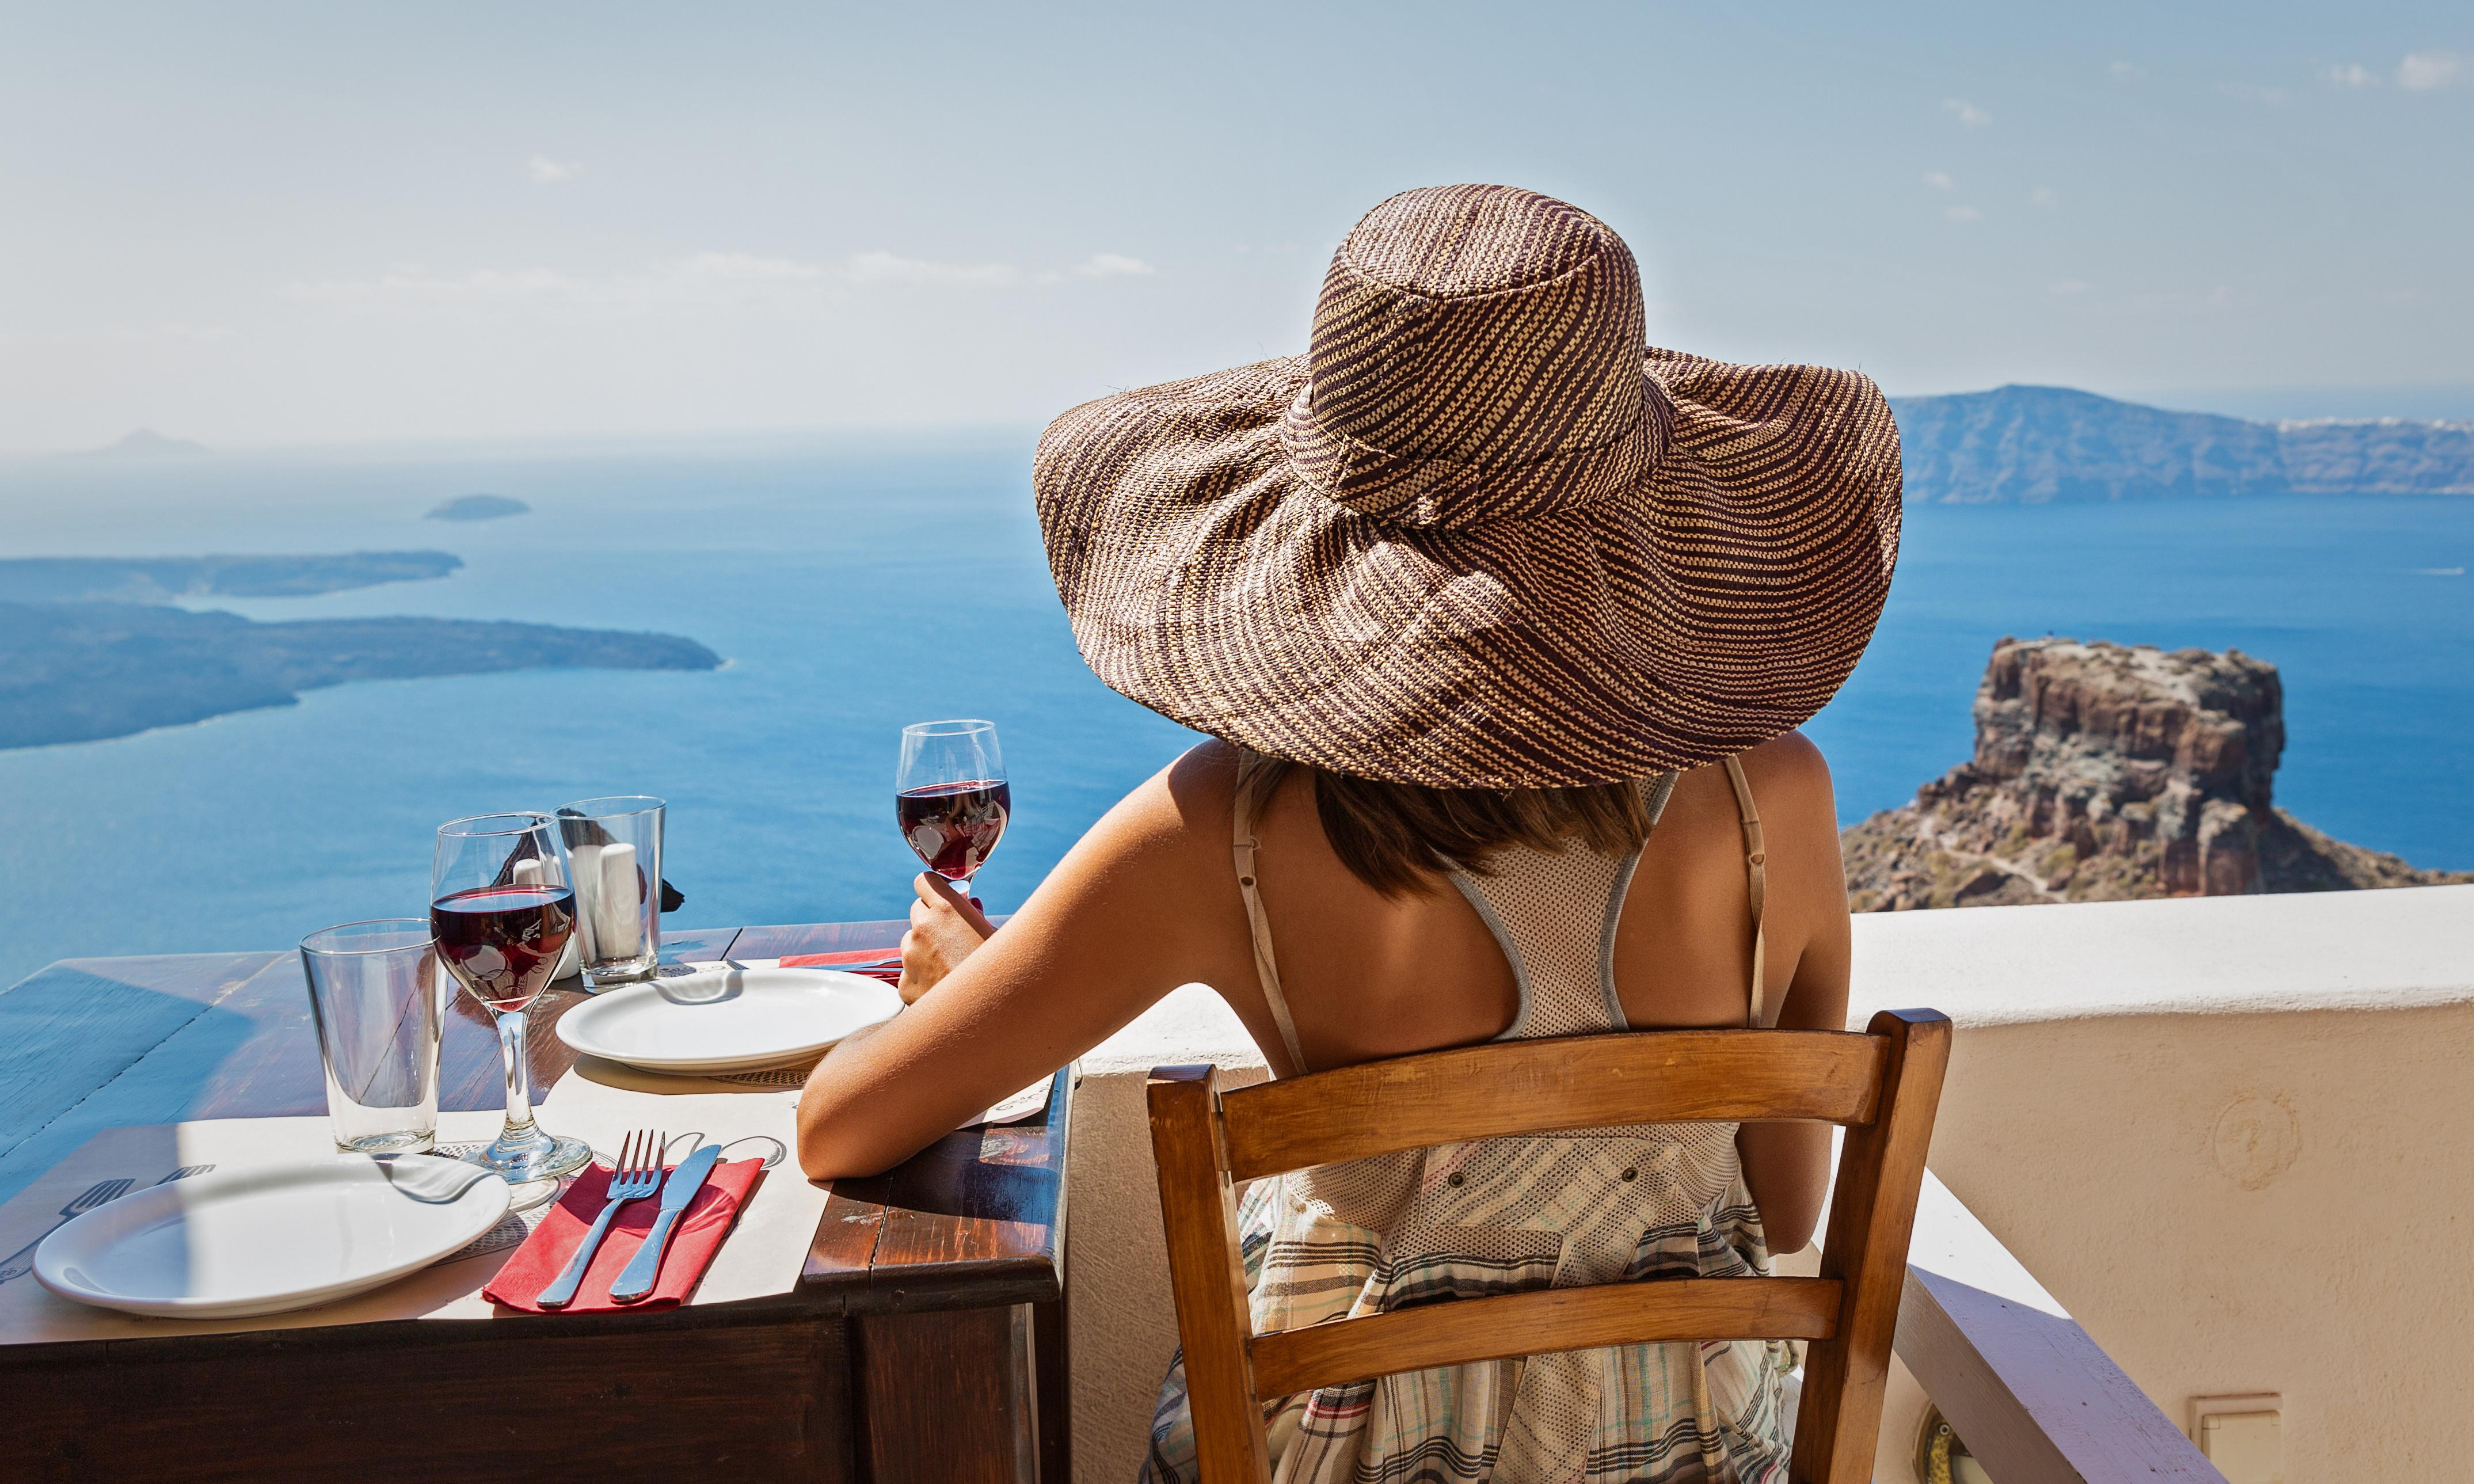 Travelling solo is sheer joy – do it while you still can